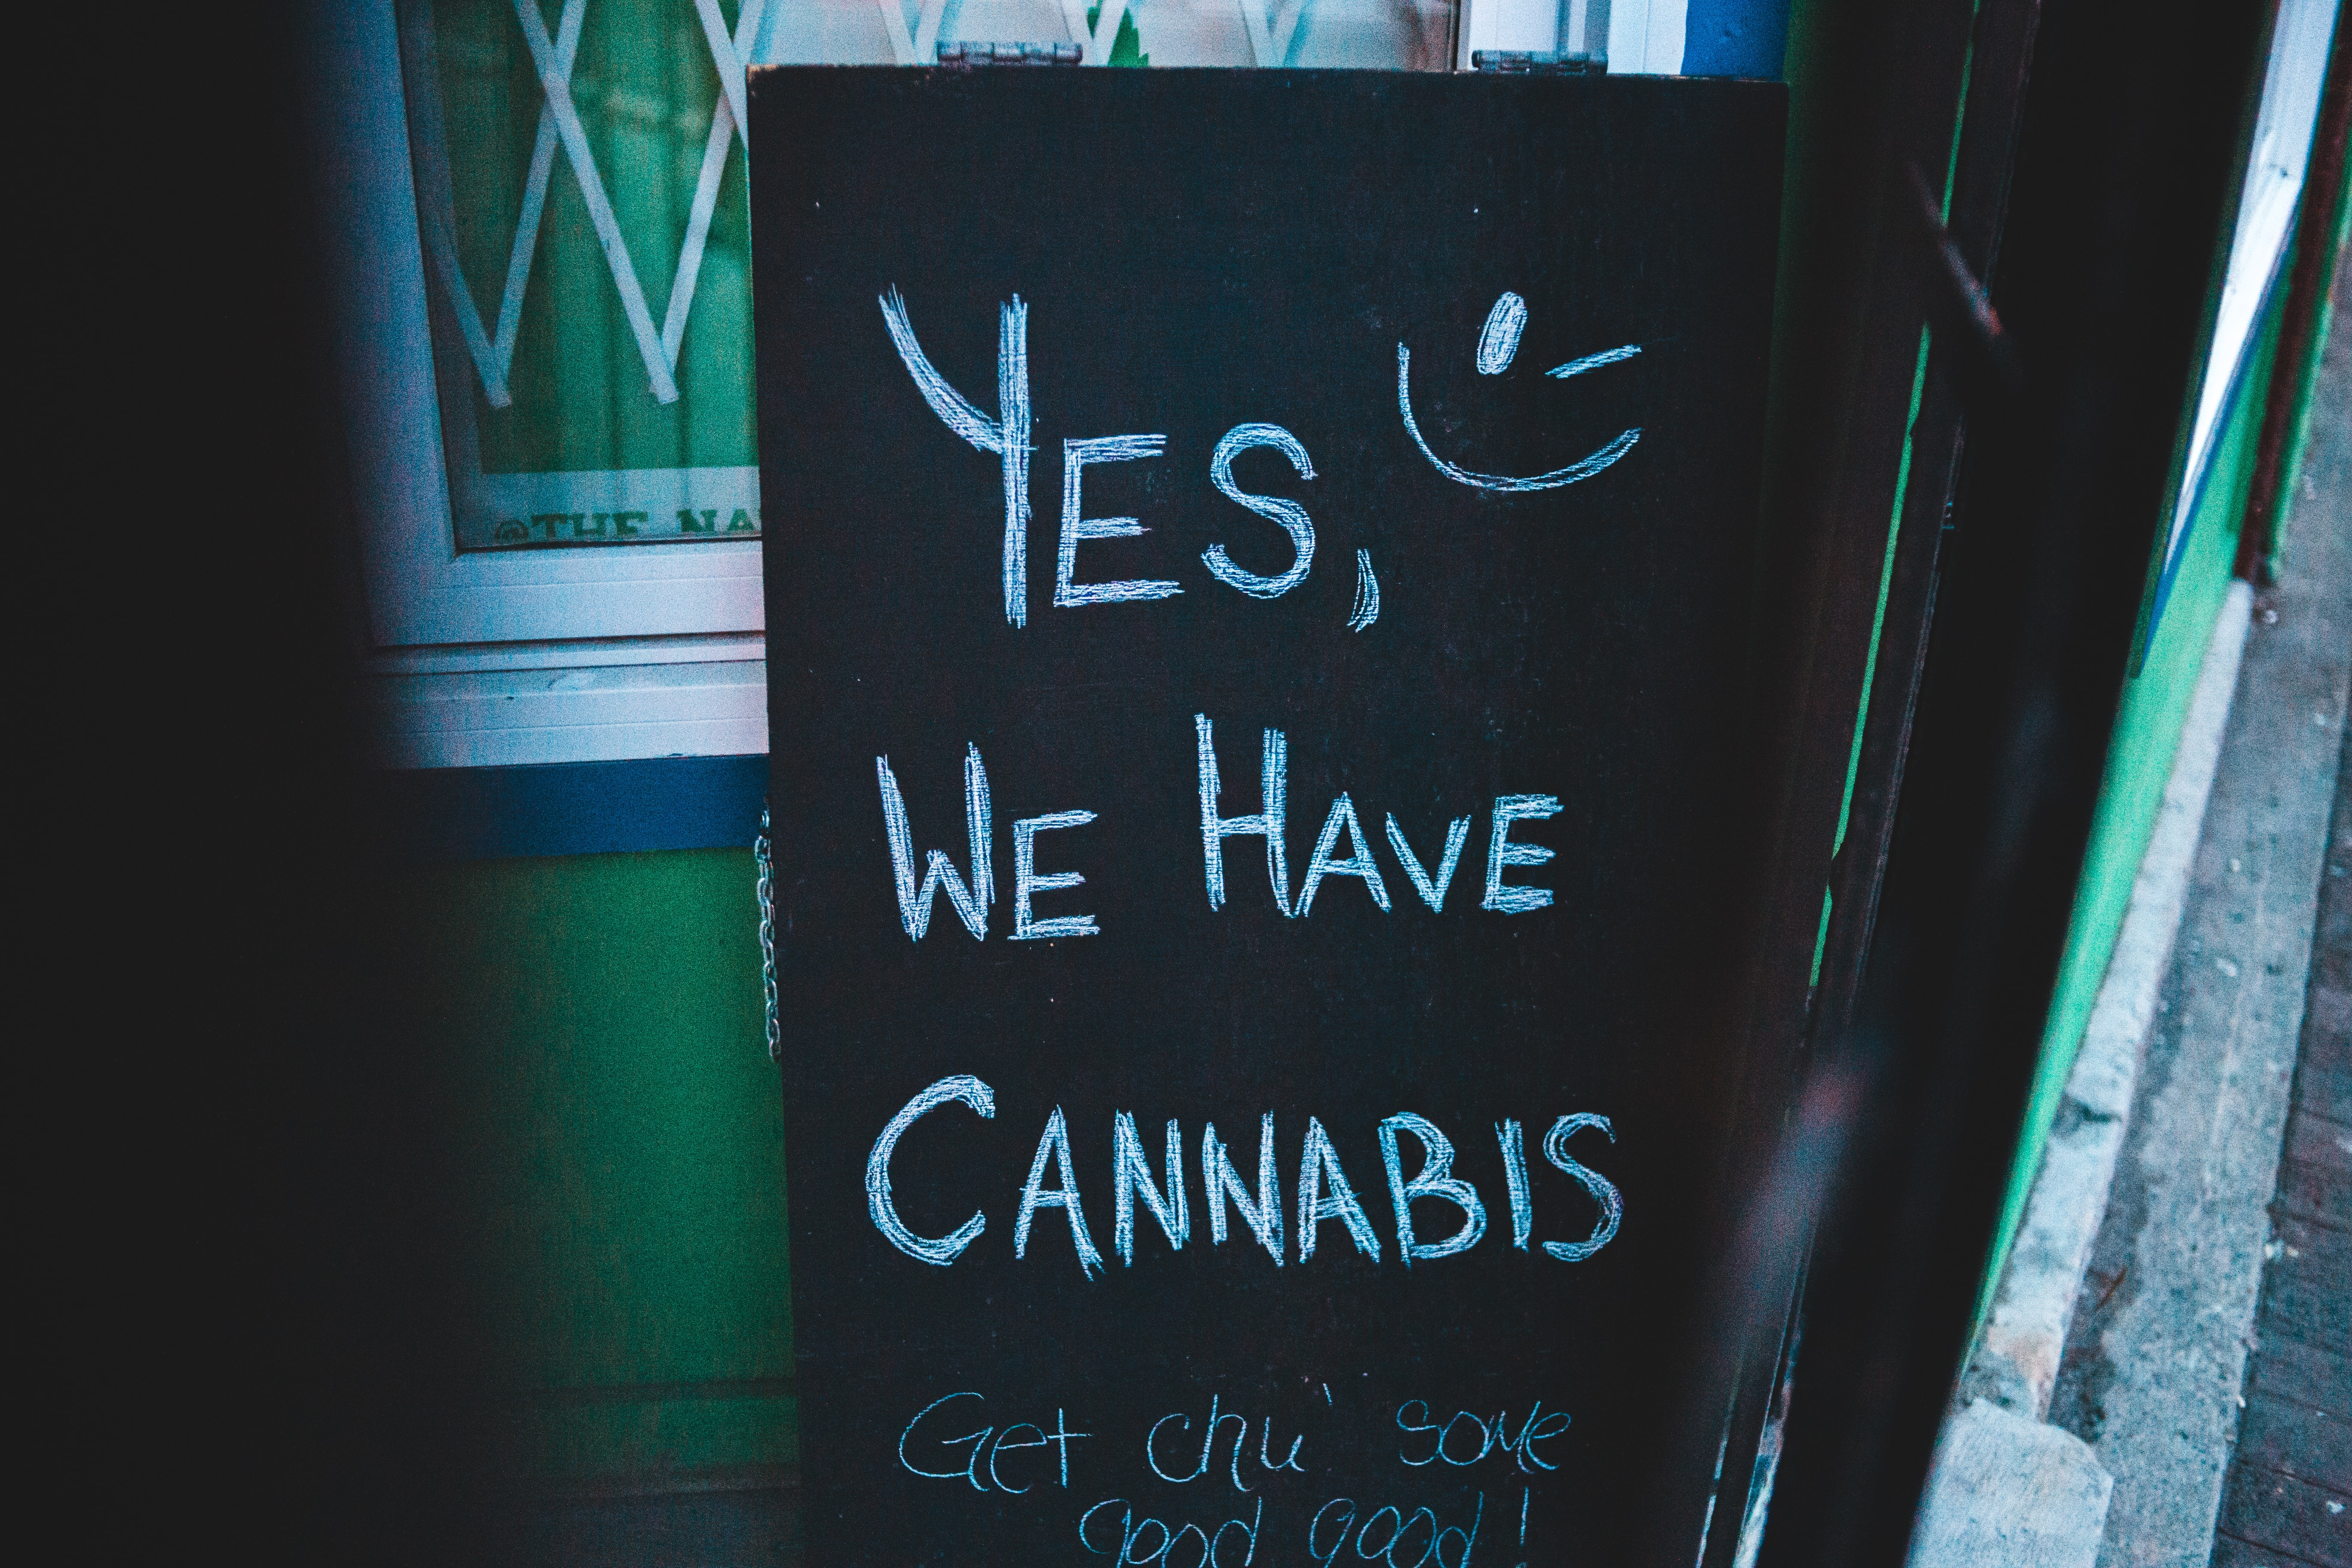 Yes we have cannabis text